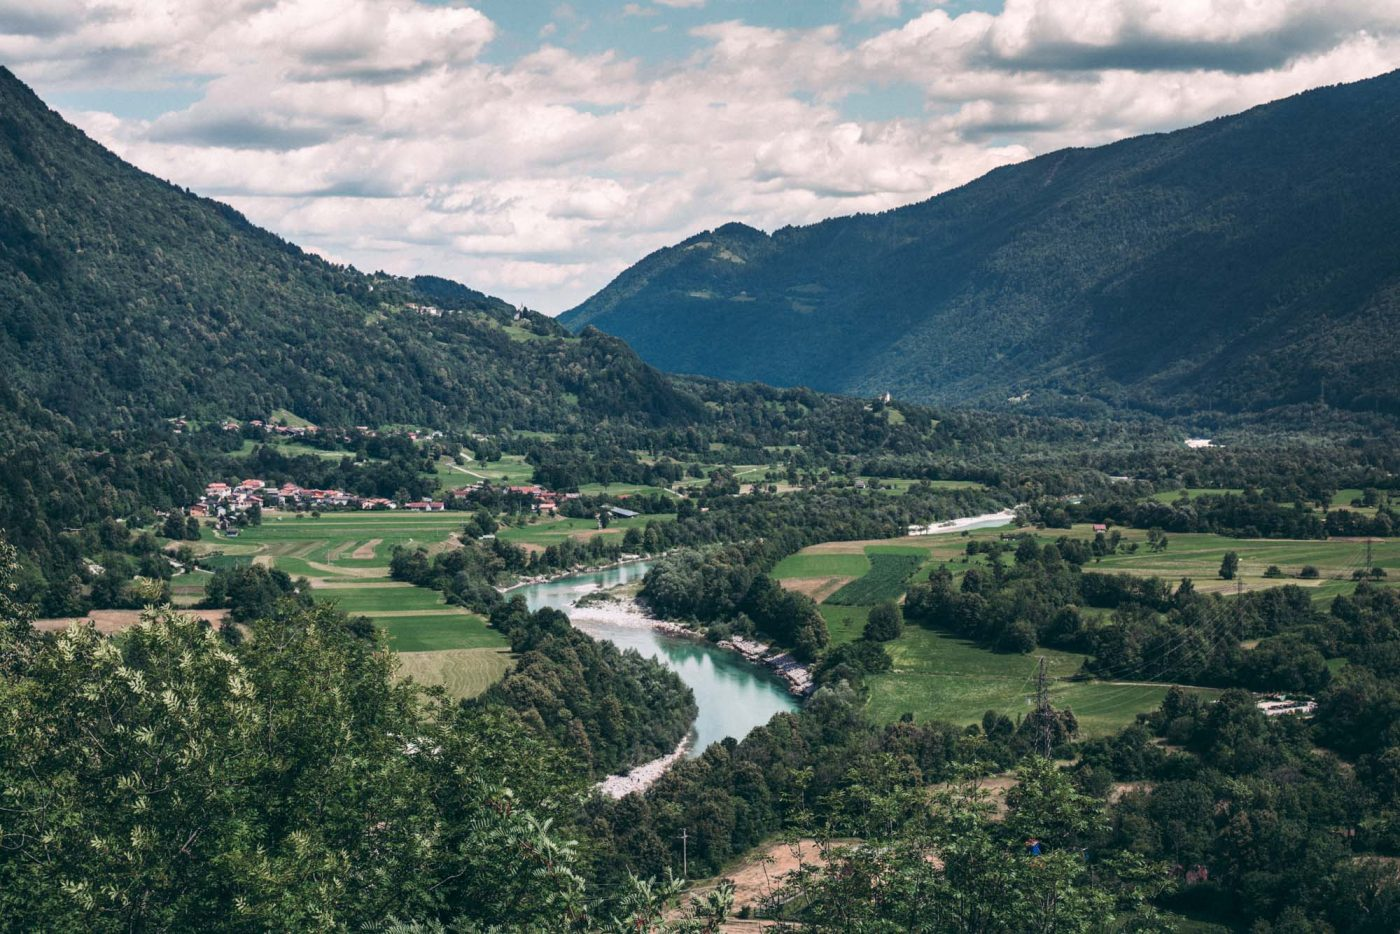 things to do in slovenia on holiday: Soca Valley